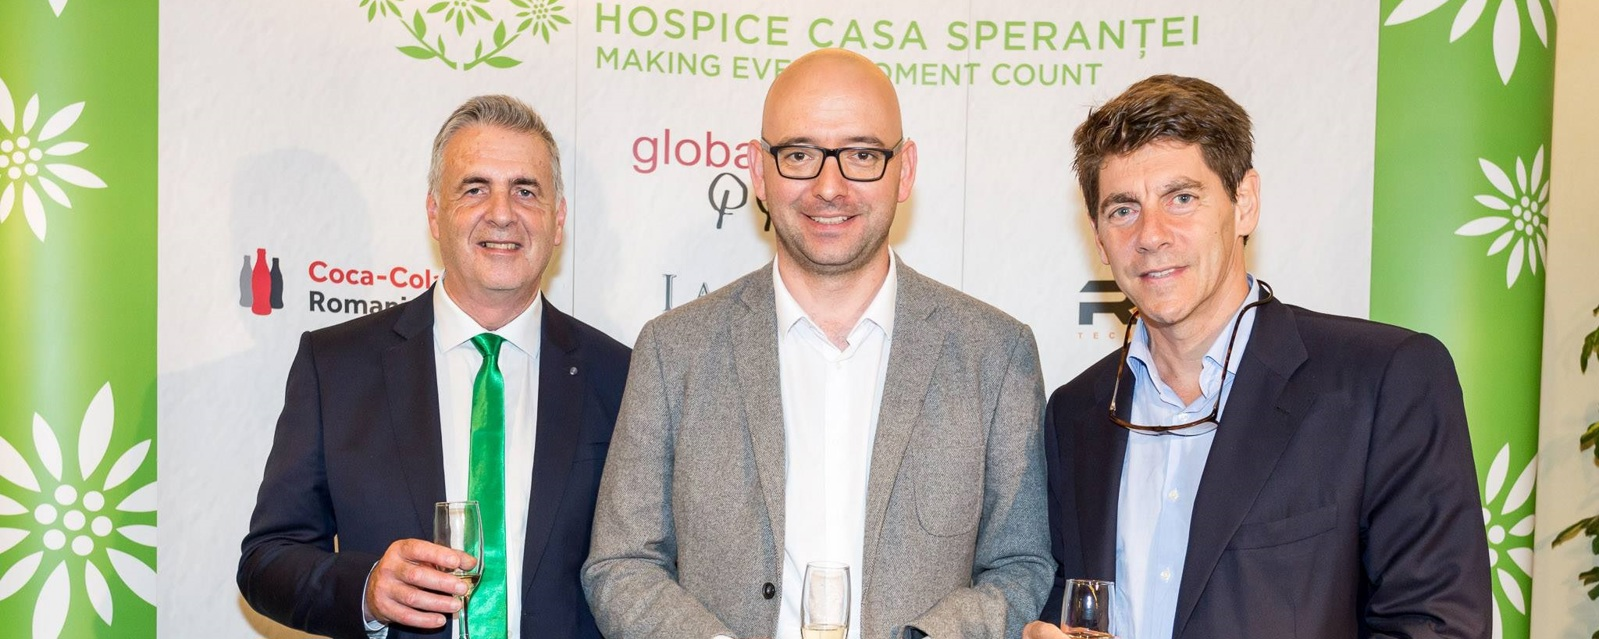 Hospice Casa Sperantei celebrates its 25th anniversary with a party!